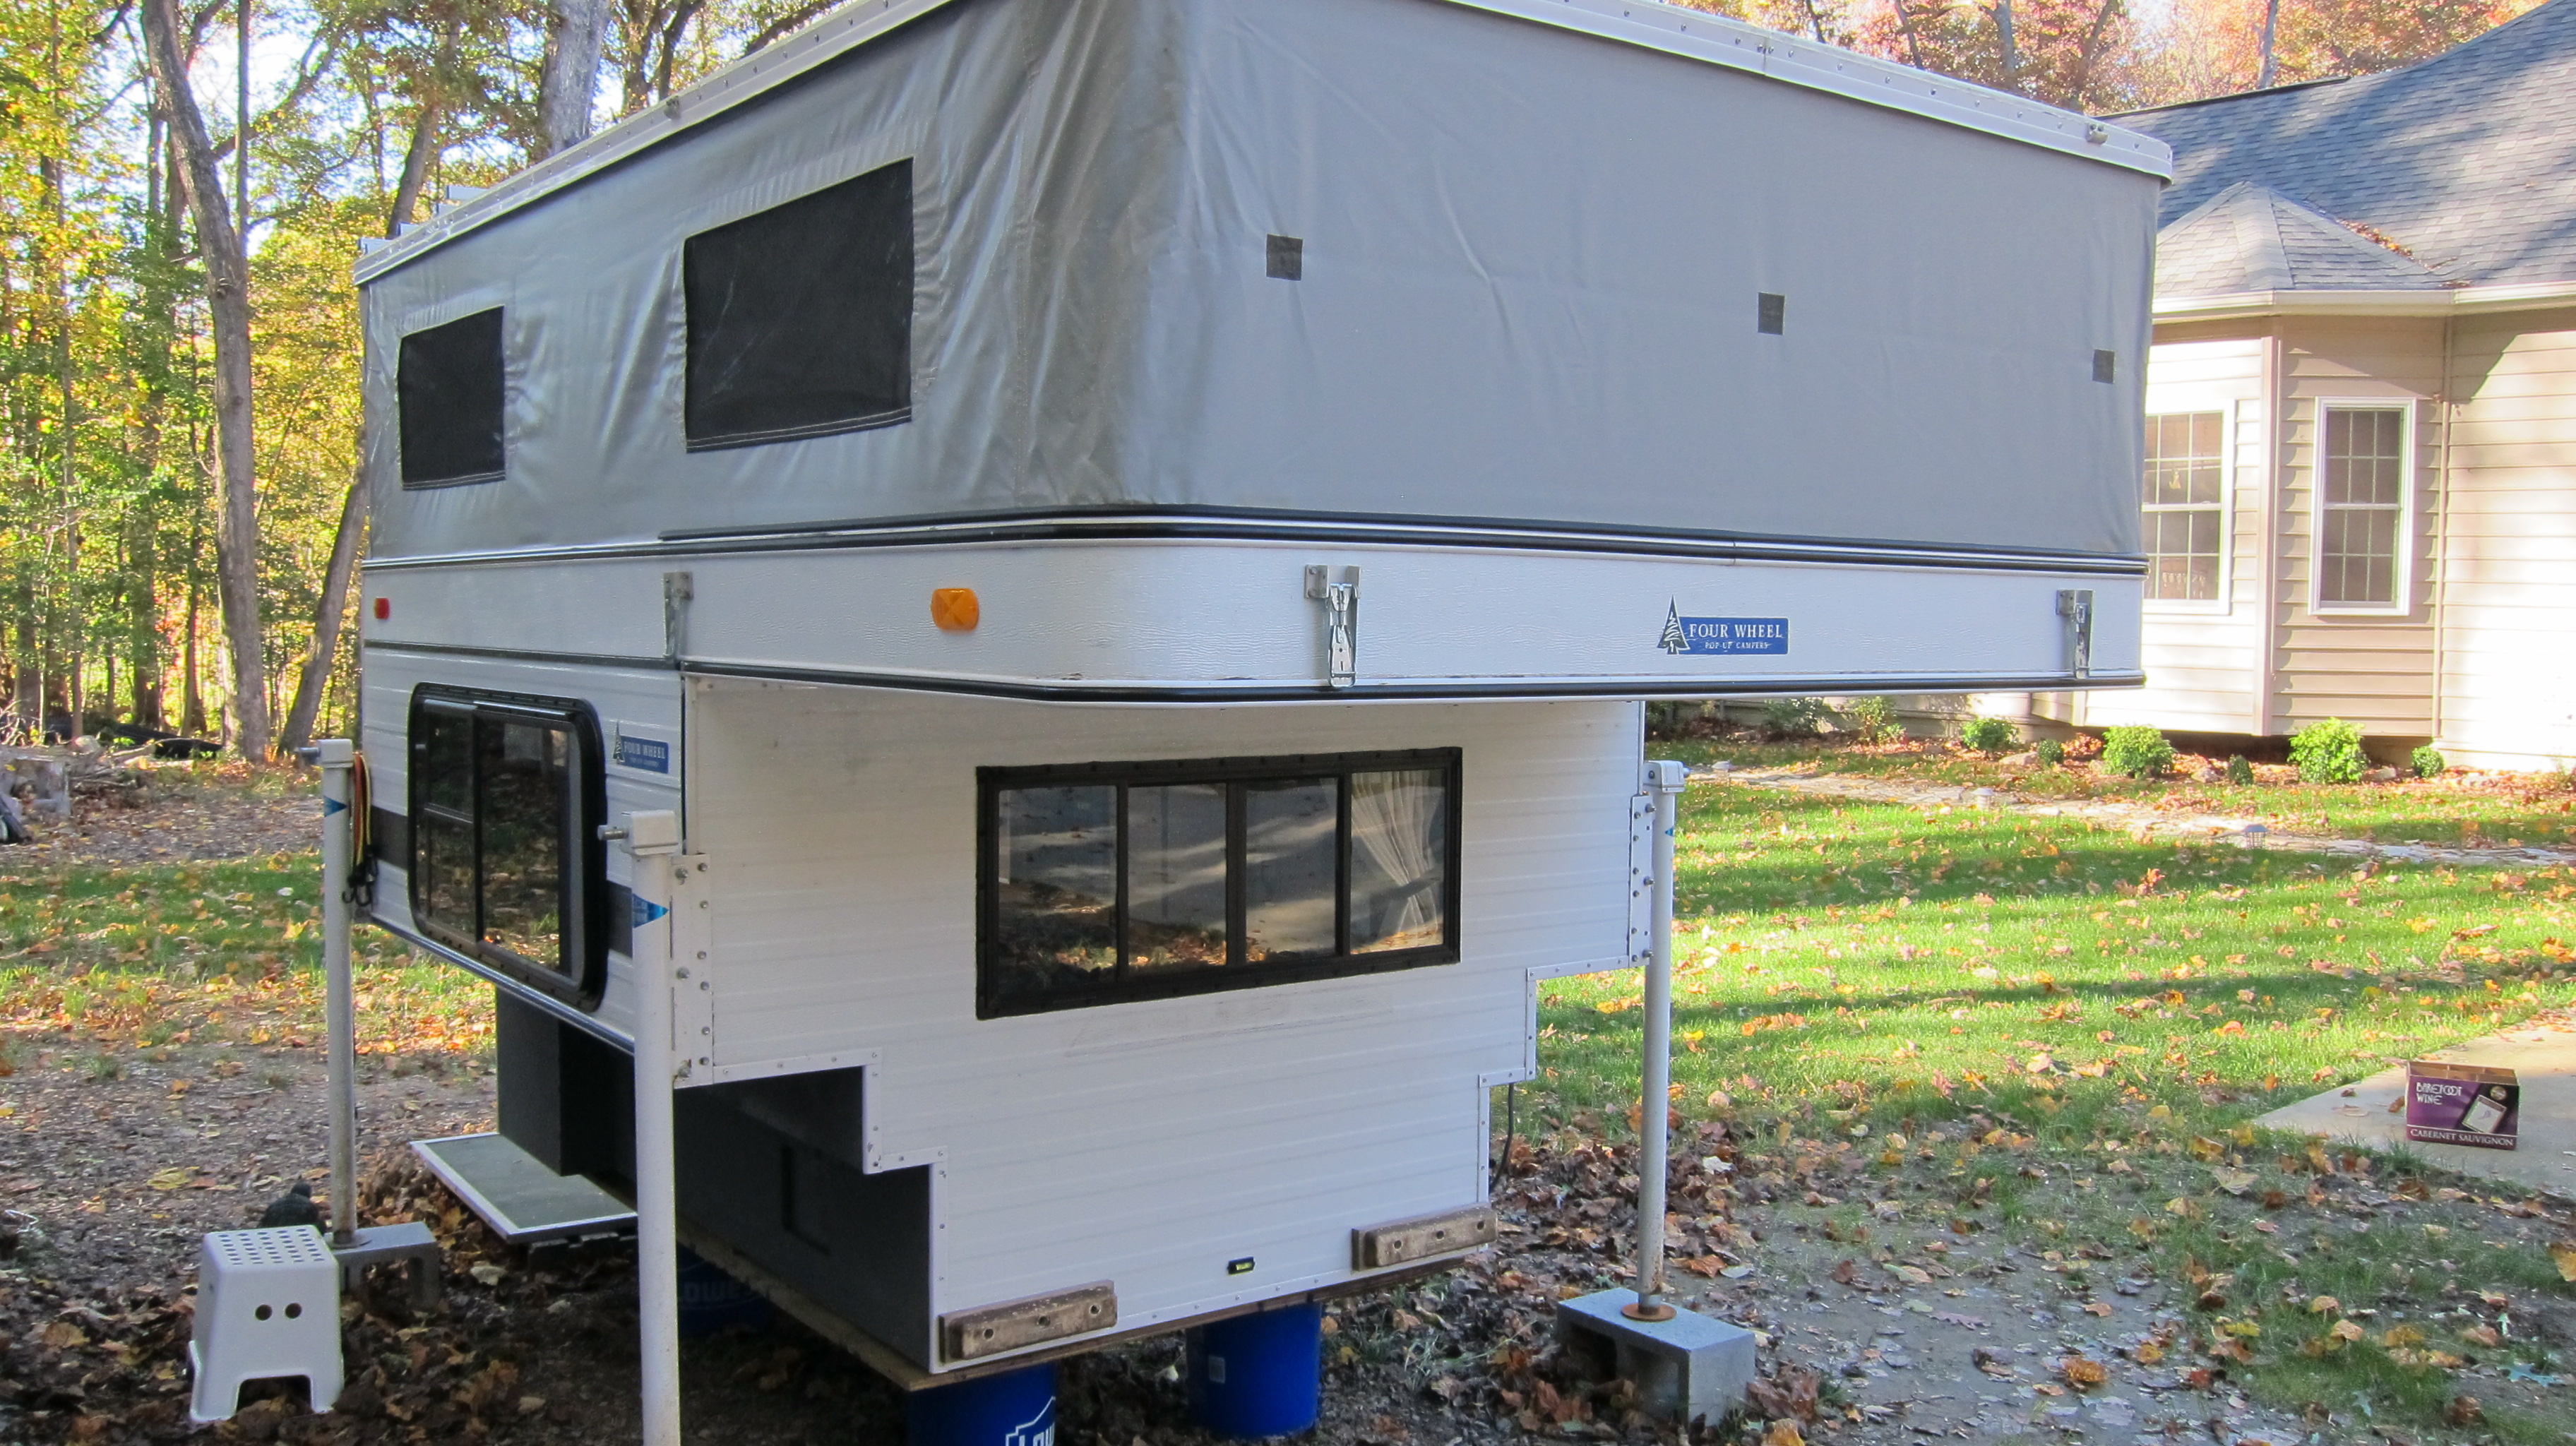 The Camper - Finding Our Four Wheel Camper   Travel Amateurs